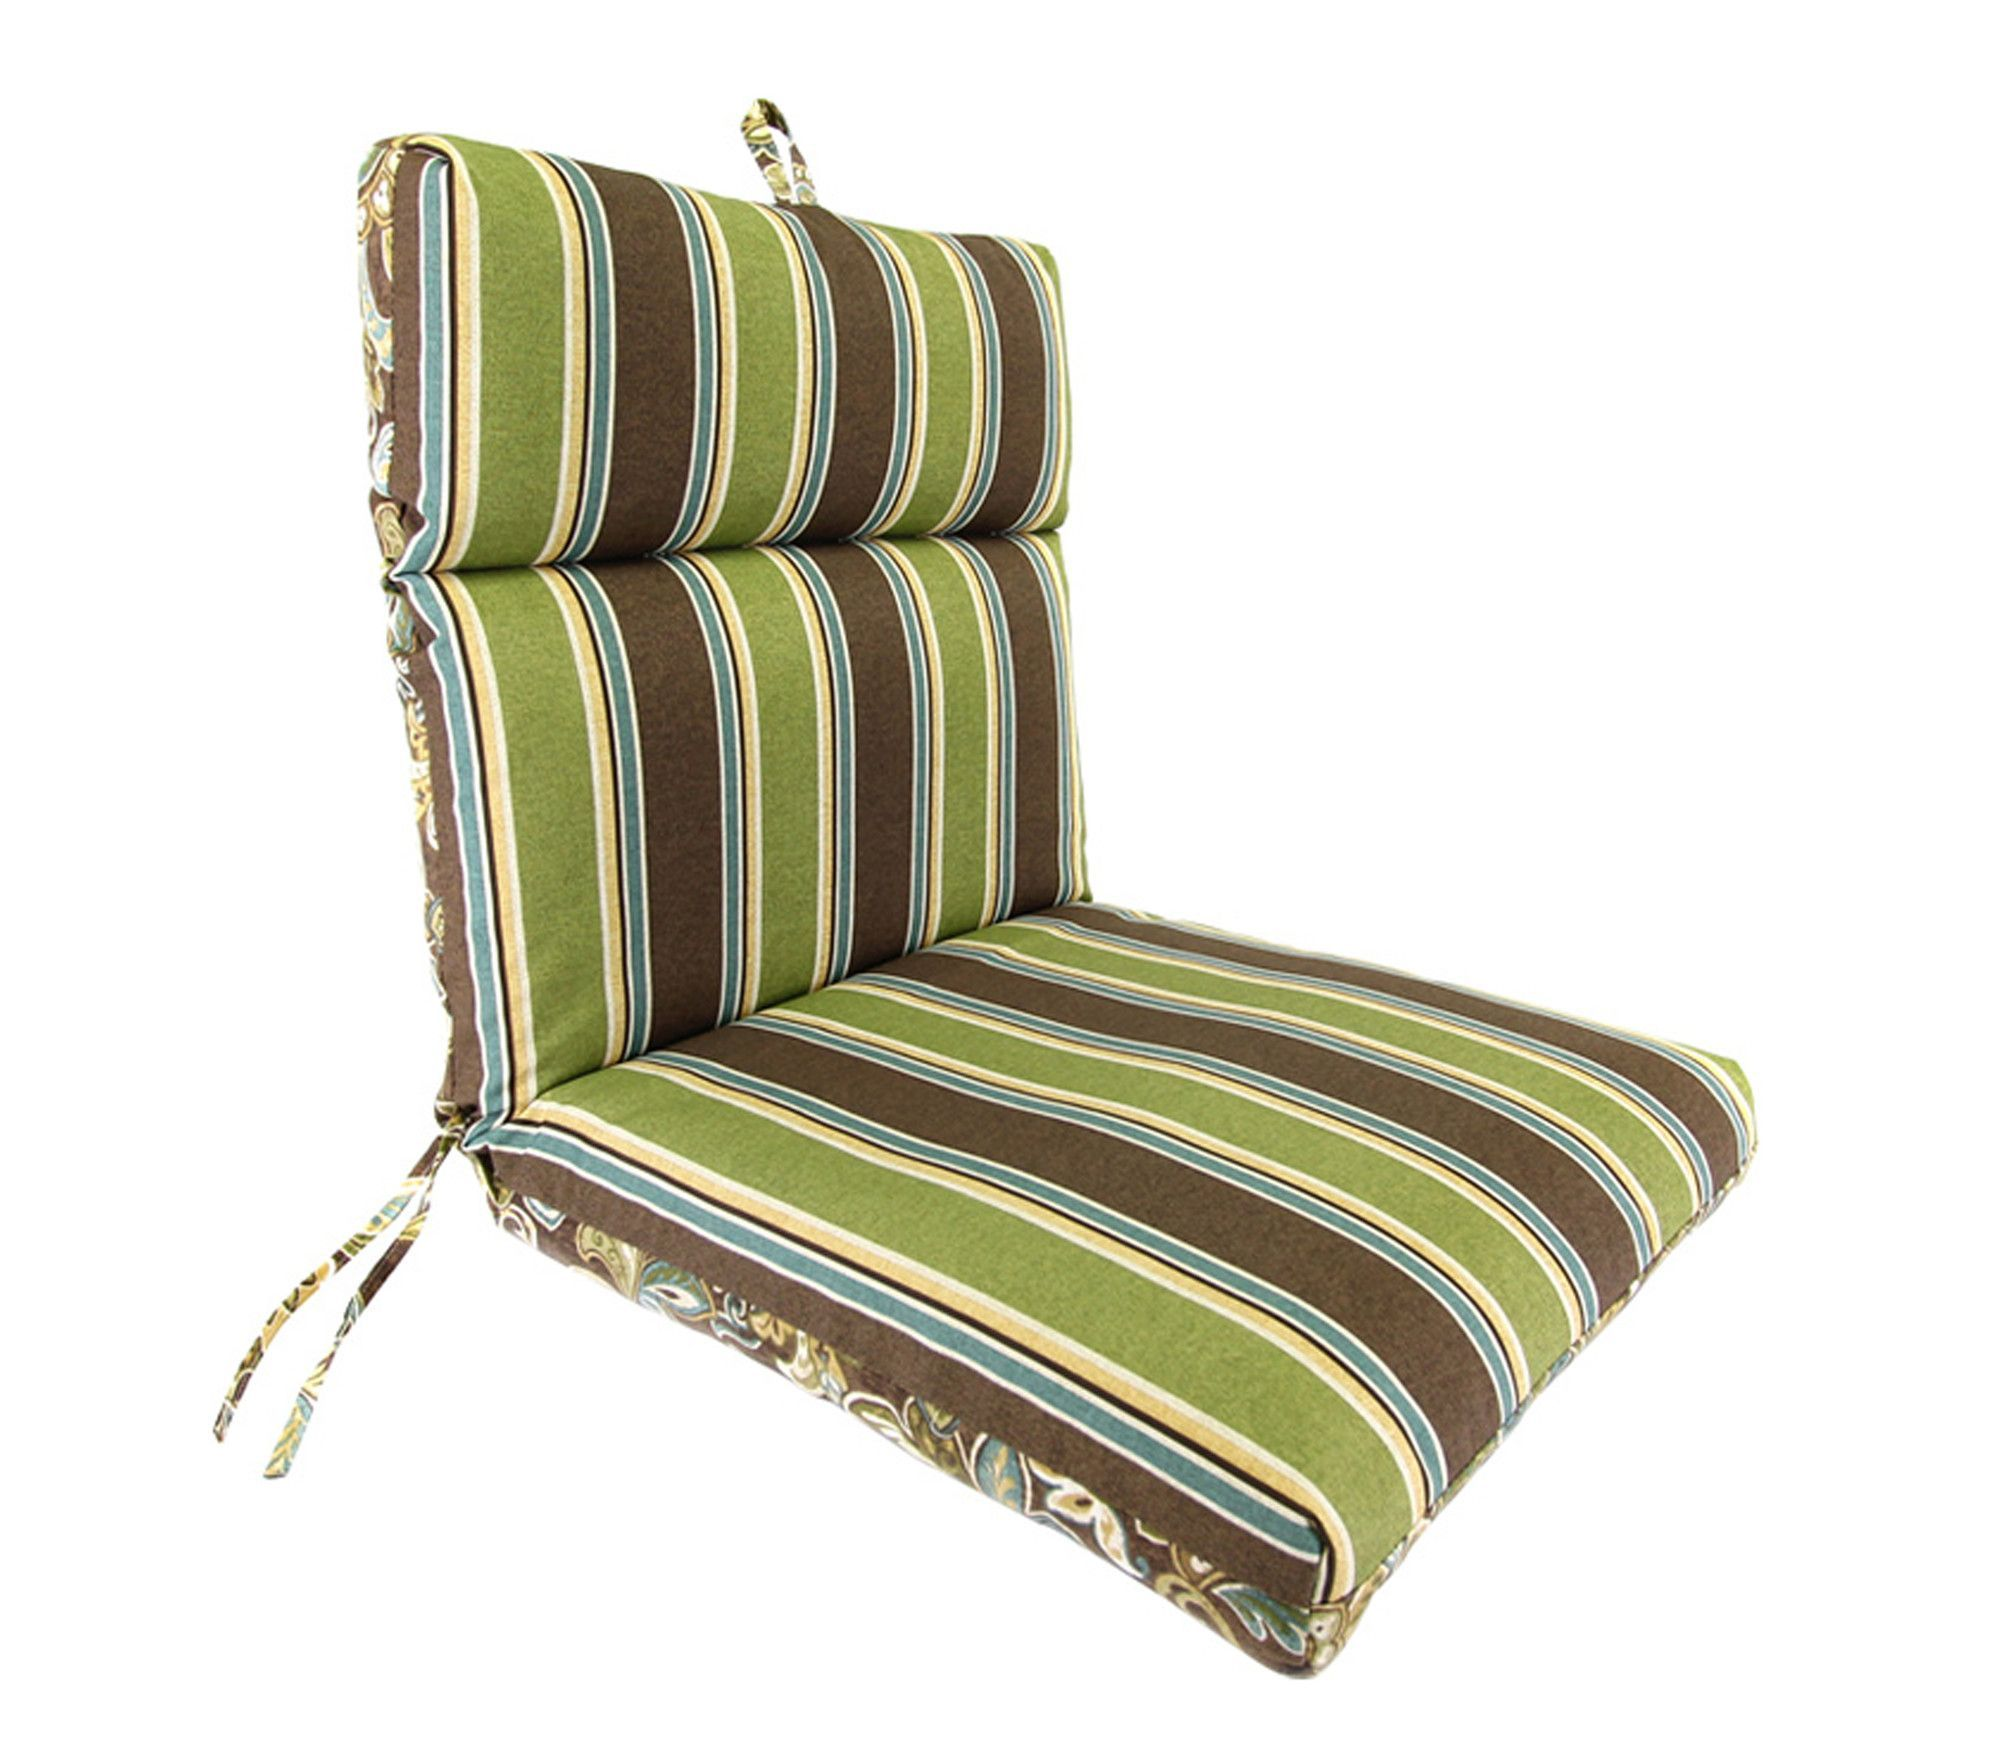 Universal Outdoor Dining Chair Cushion Products